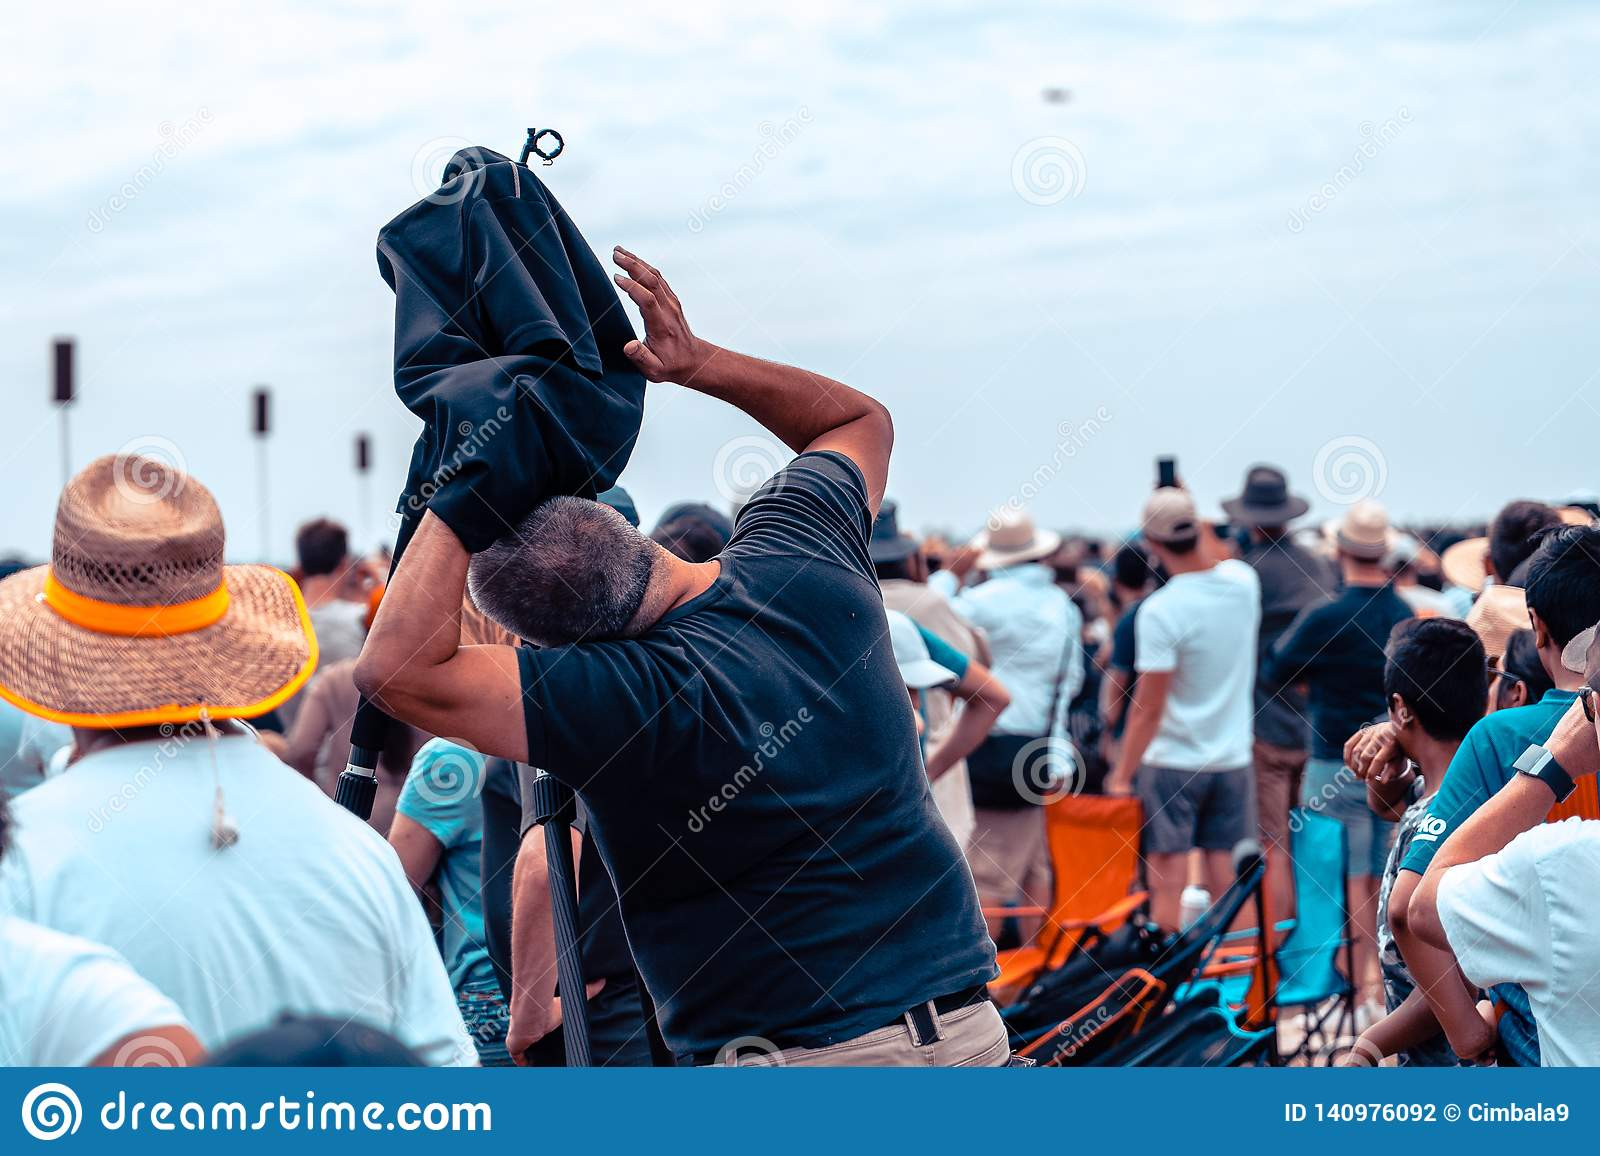 Avalon, Melbourne, Australia - Mar 3, 2019: Photographer at the airshow